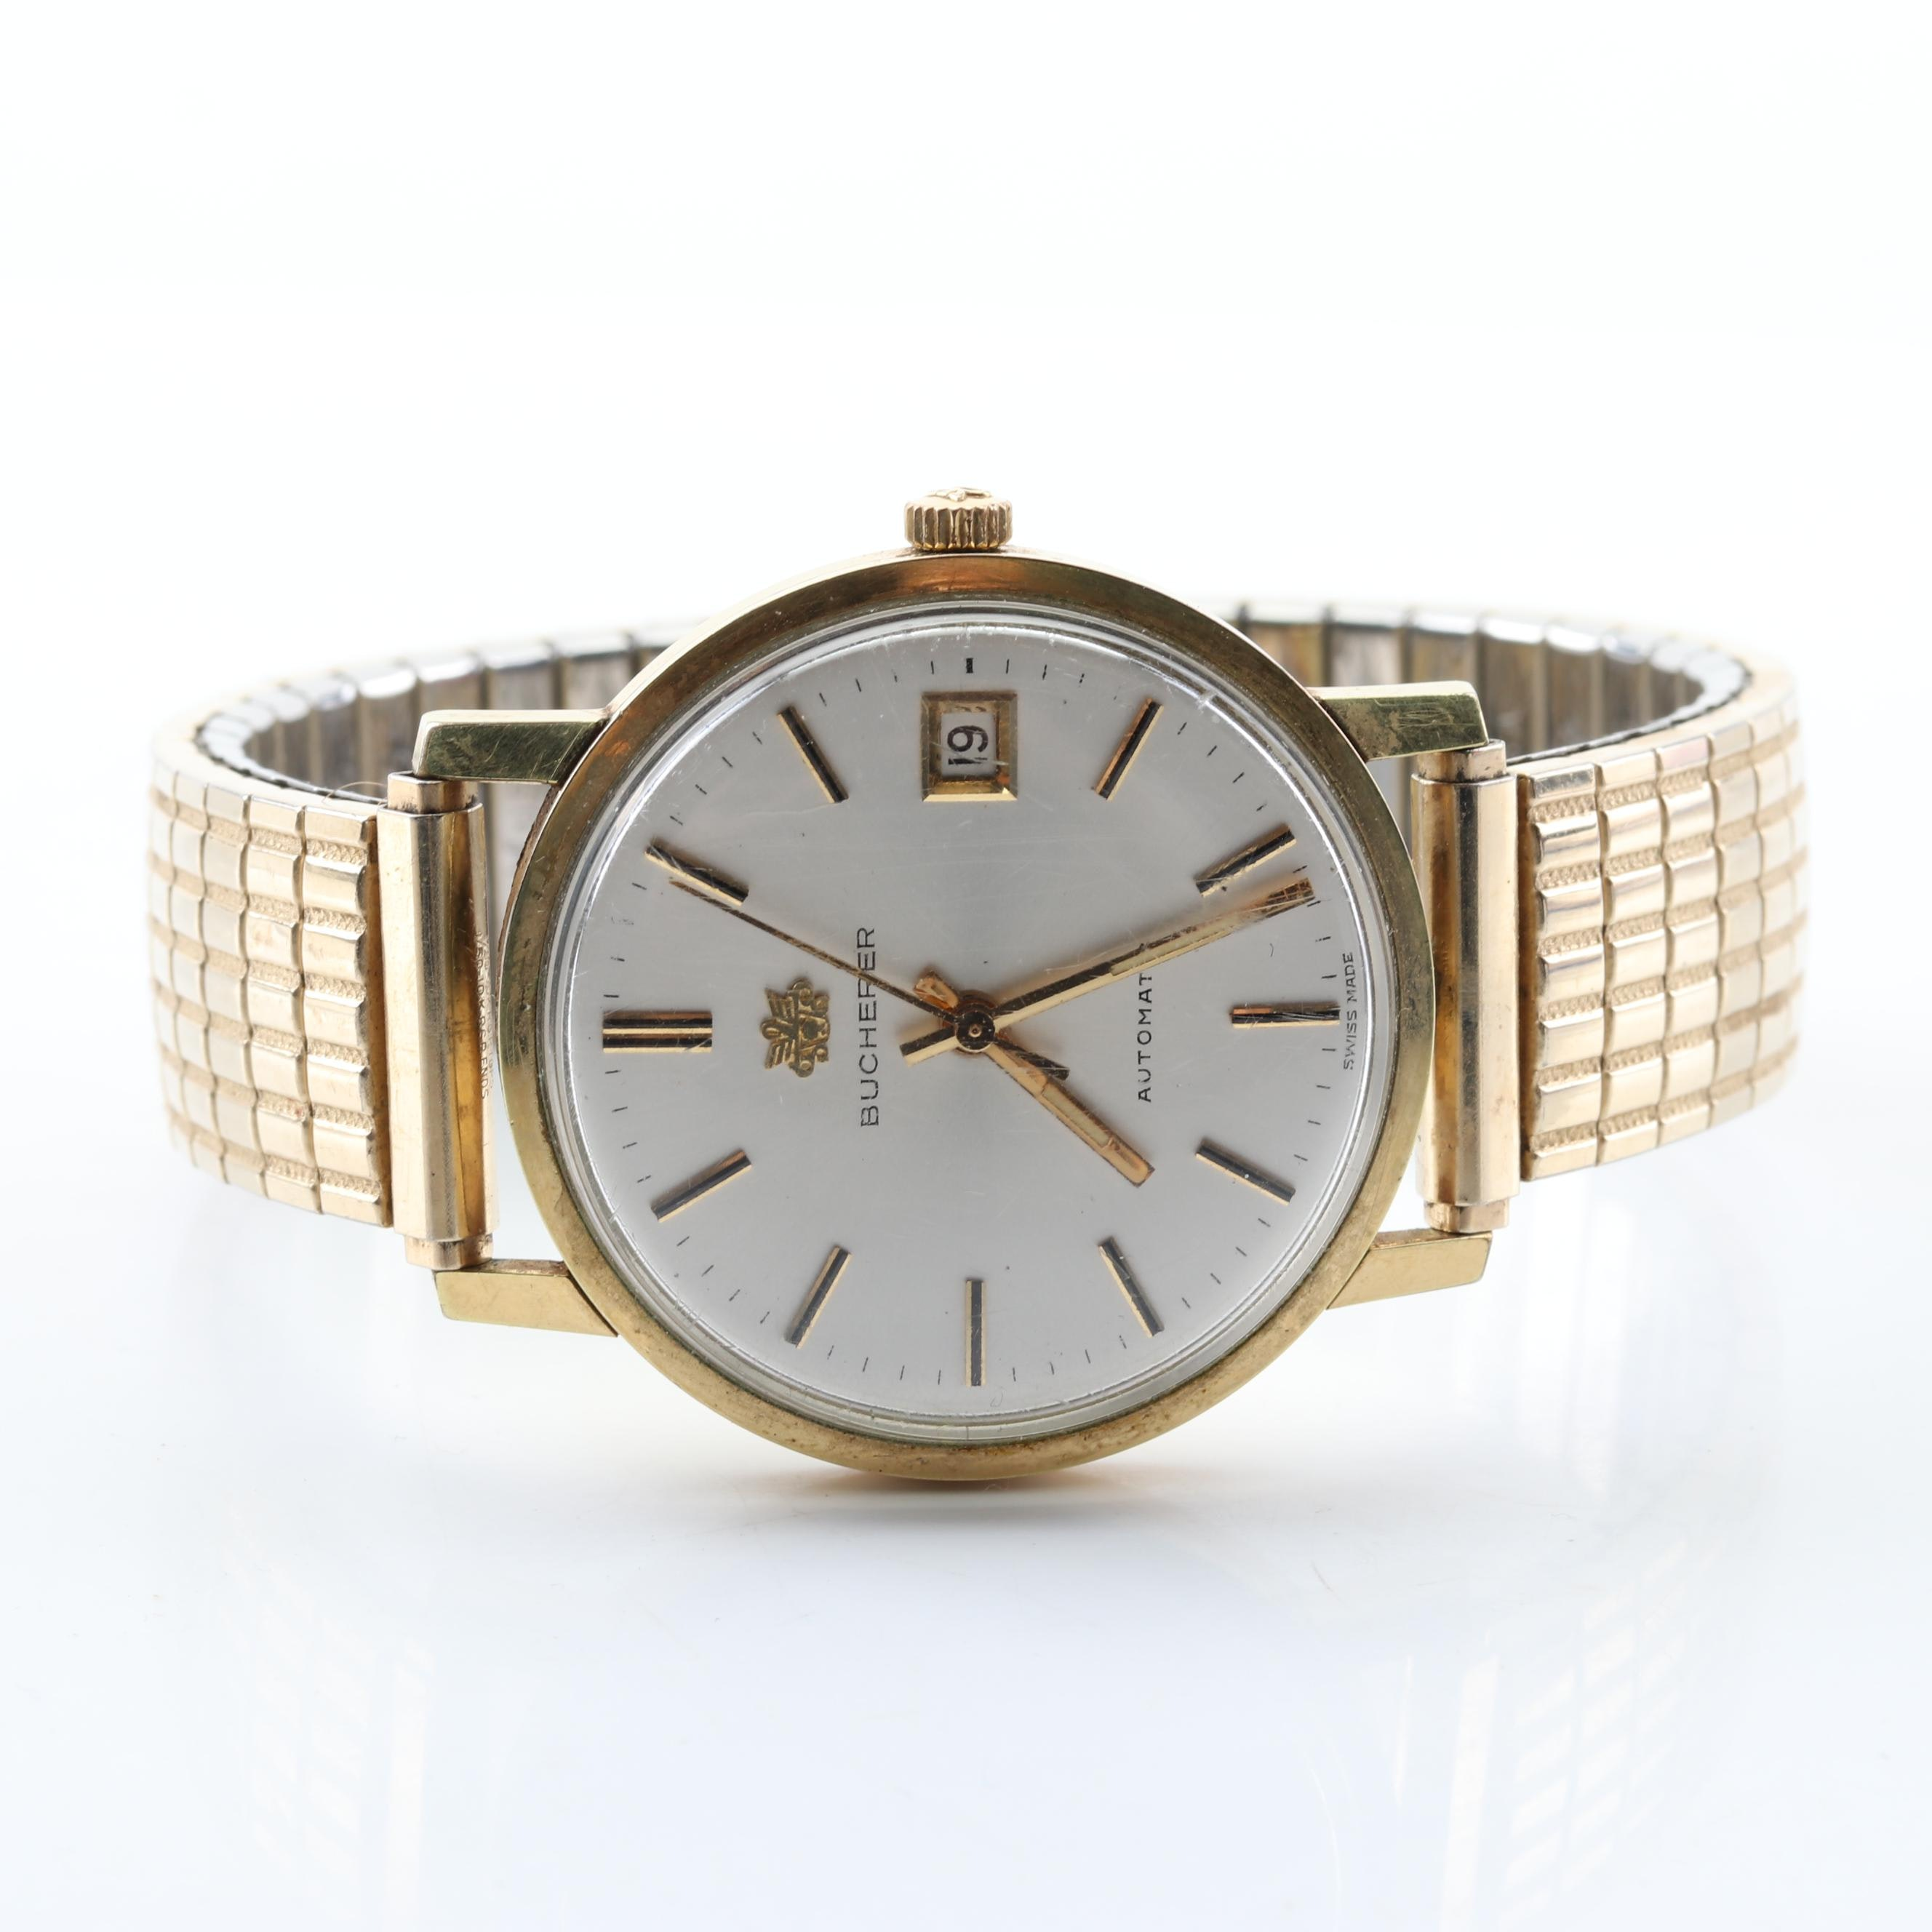 18K Yellow Gold Bucherer Swiss Made Automatic Wristwatch